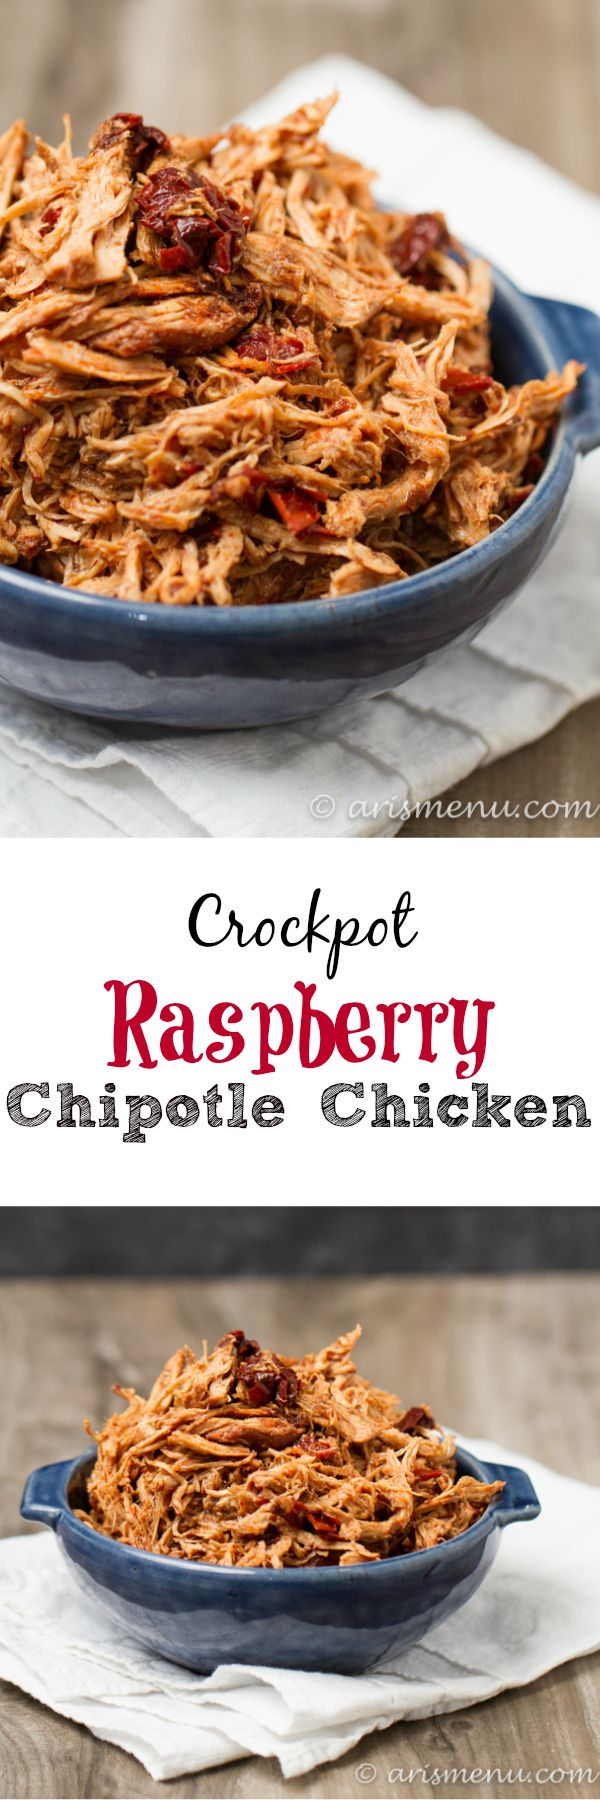 Crockpot Raspberry Chipotle Chicken: So simple, easy and delicious with just 3 ingredients!